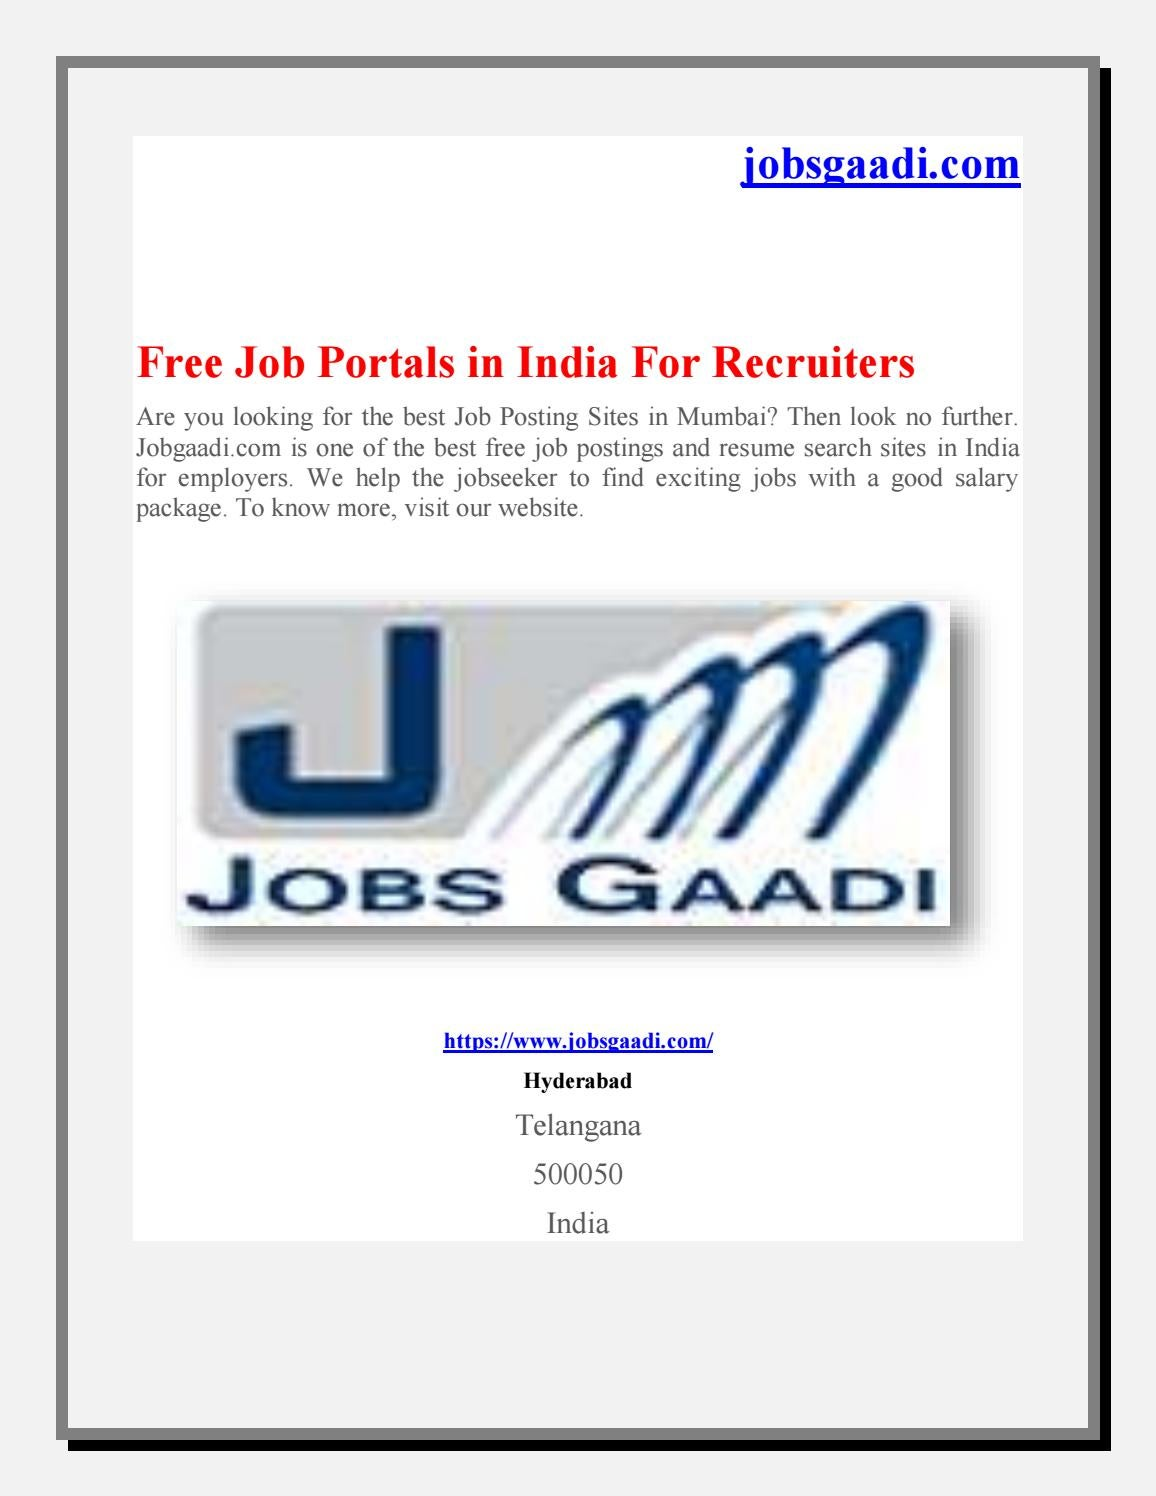 Free resume search websites in india appic internship essays